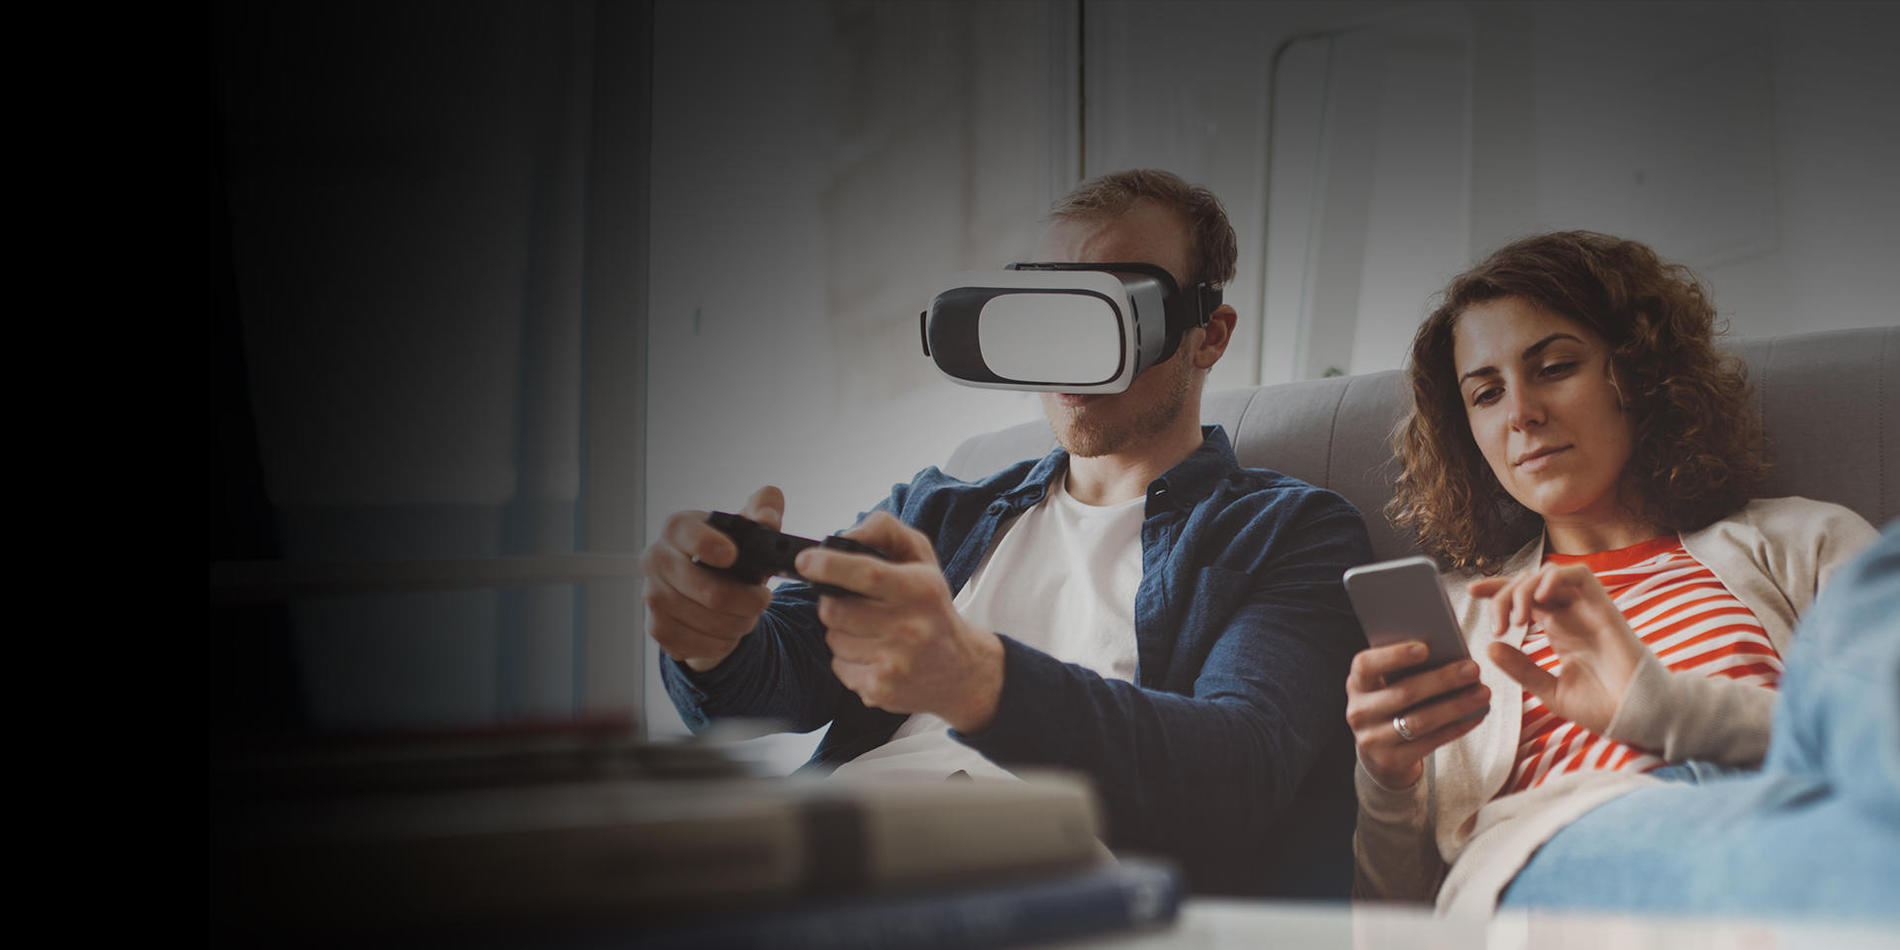 Photo of two people on a couch using Suddenlink high-speed internet connected devices - one playing video games on a virtual reality headset while another scrolls on a smartphone